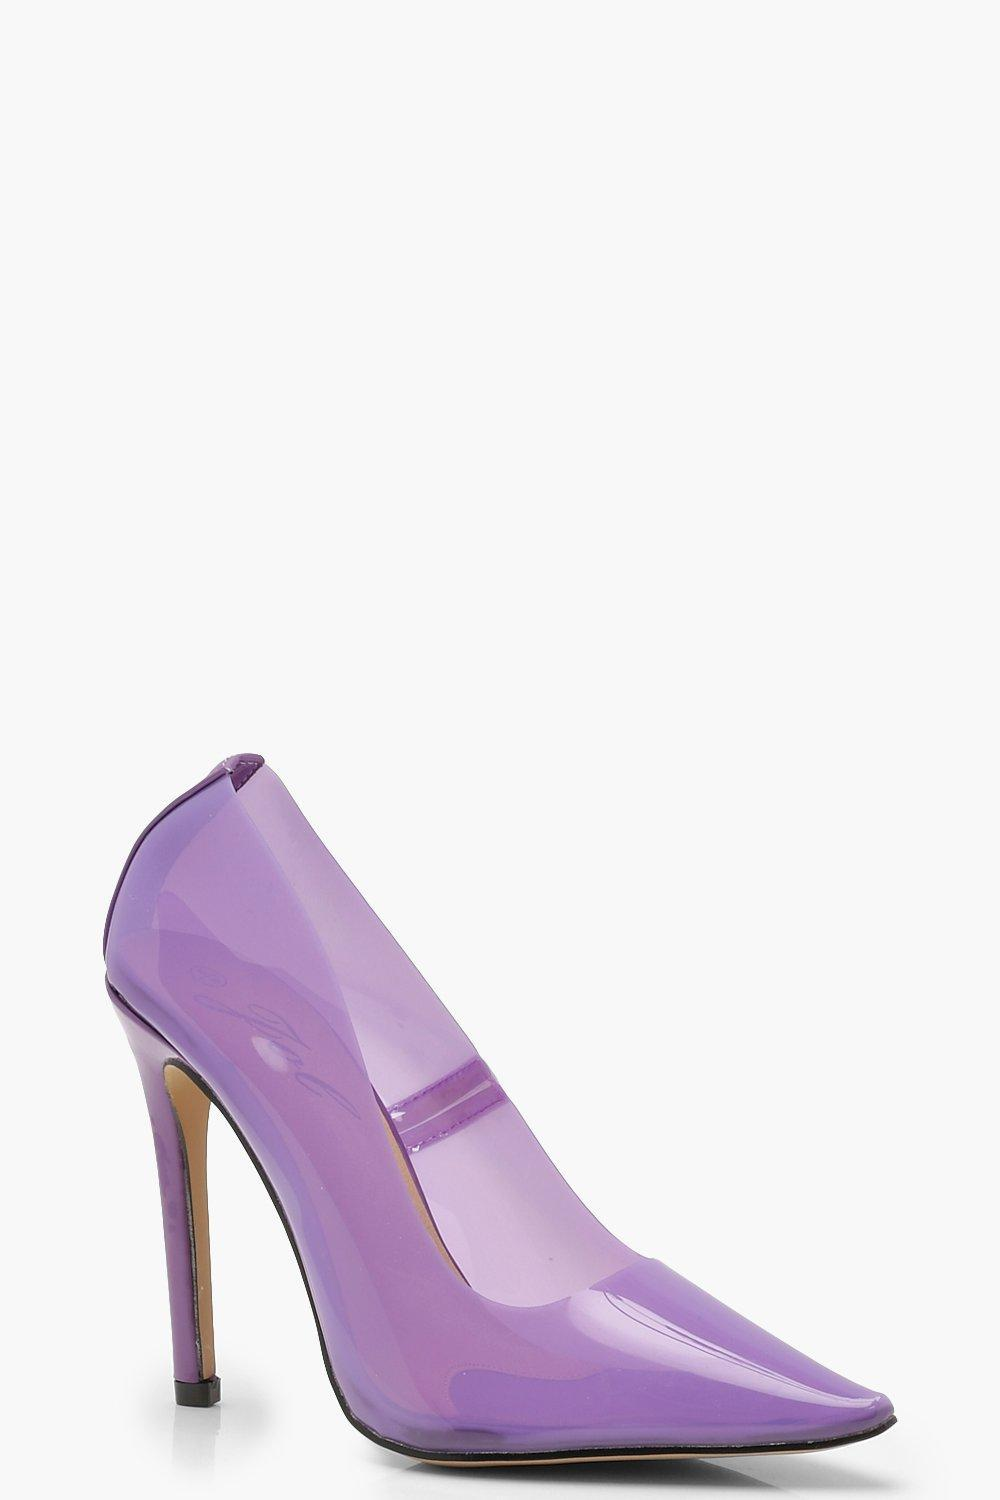 4c5ef8b2686 Boohoo Clear Court Shoes in Purple - Lyst